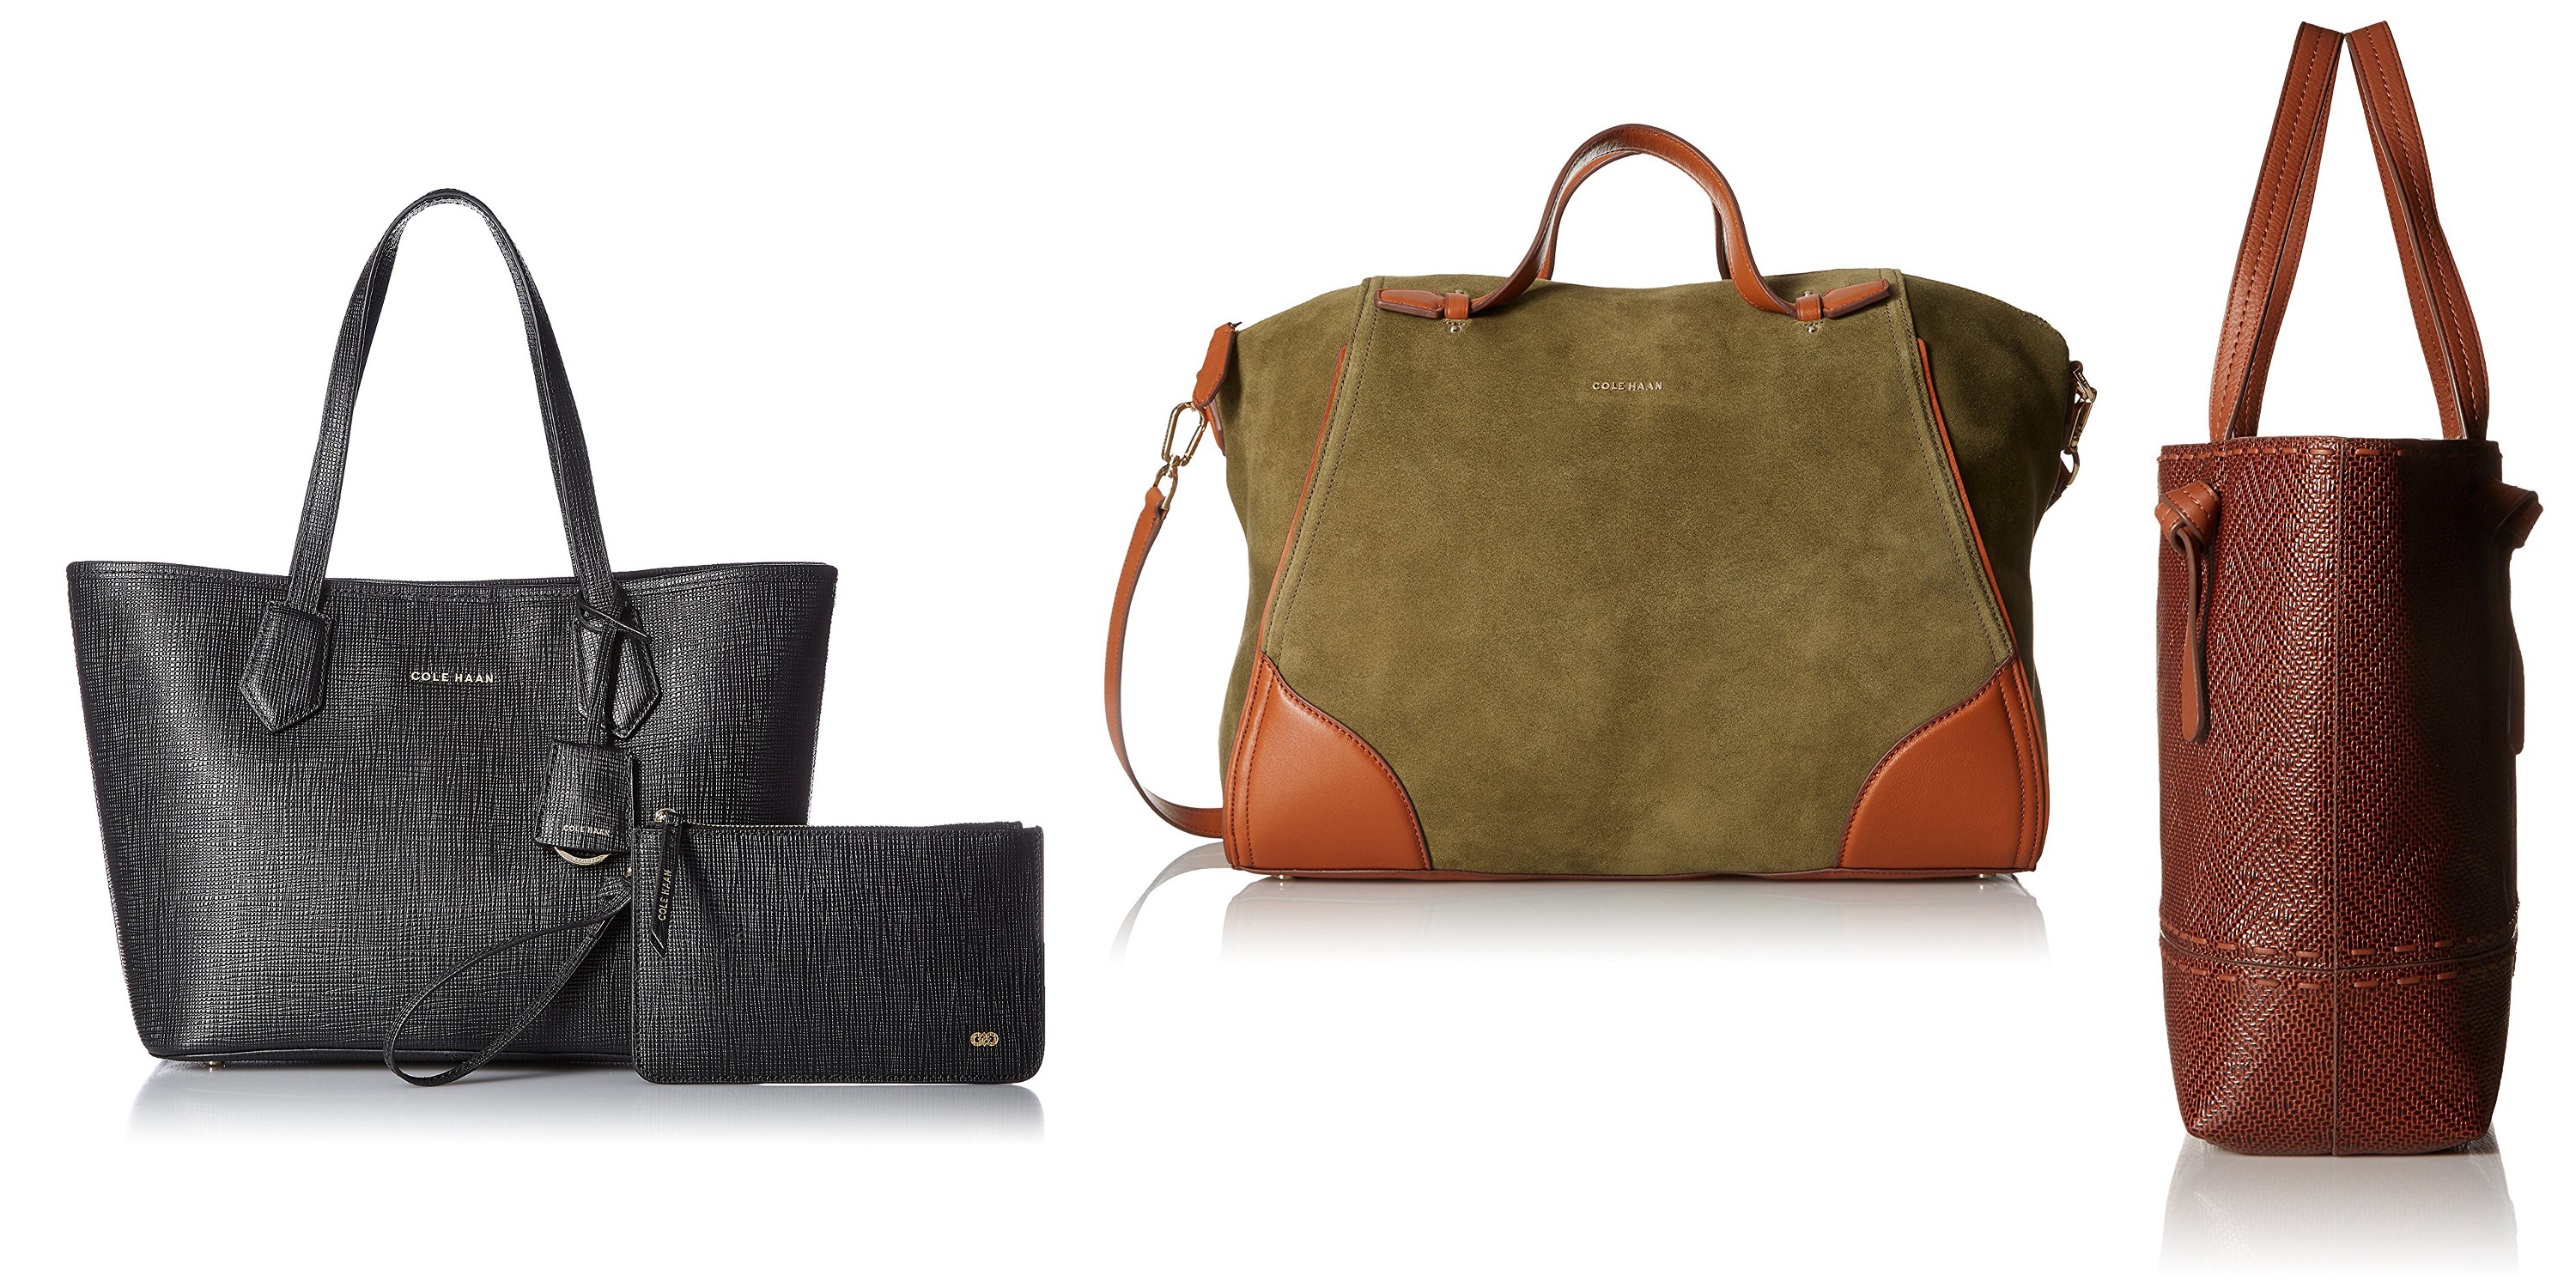 Cole Haan Fossil And More Handbags Wallets Up To 50 Off On